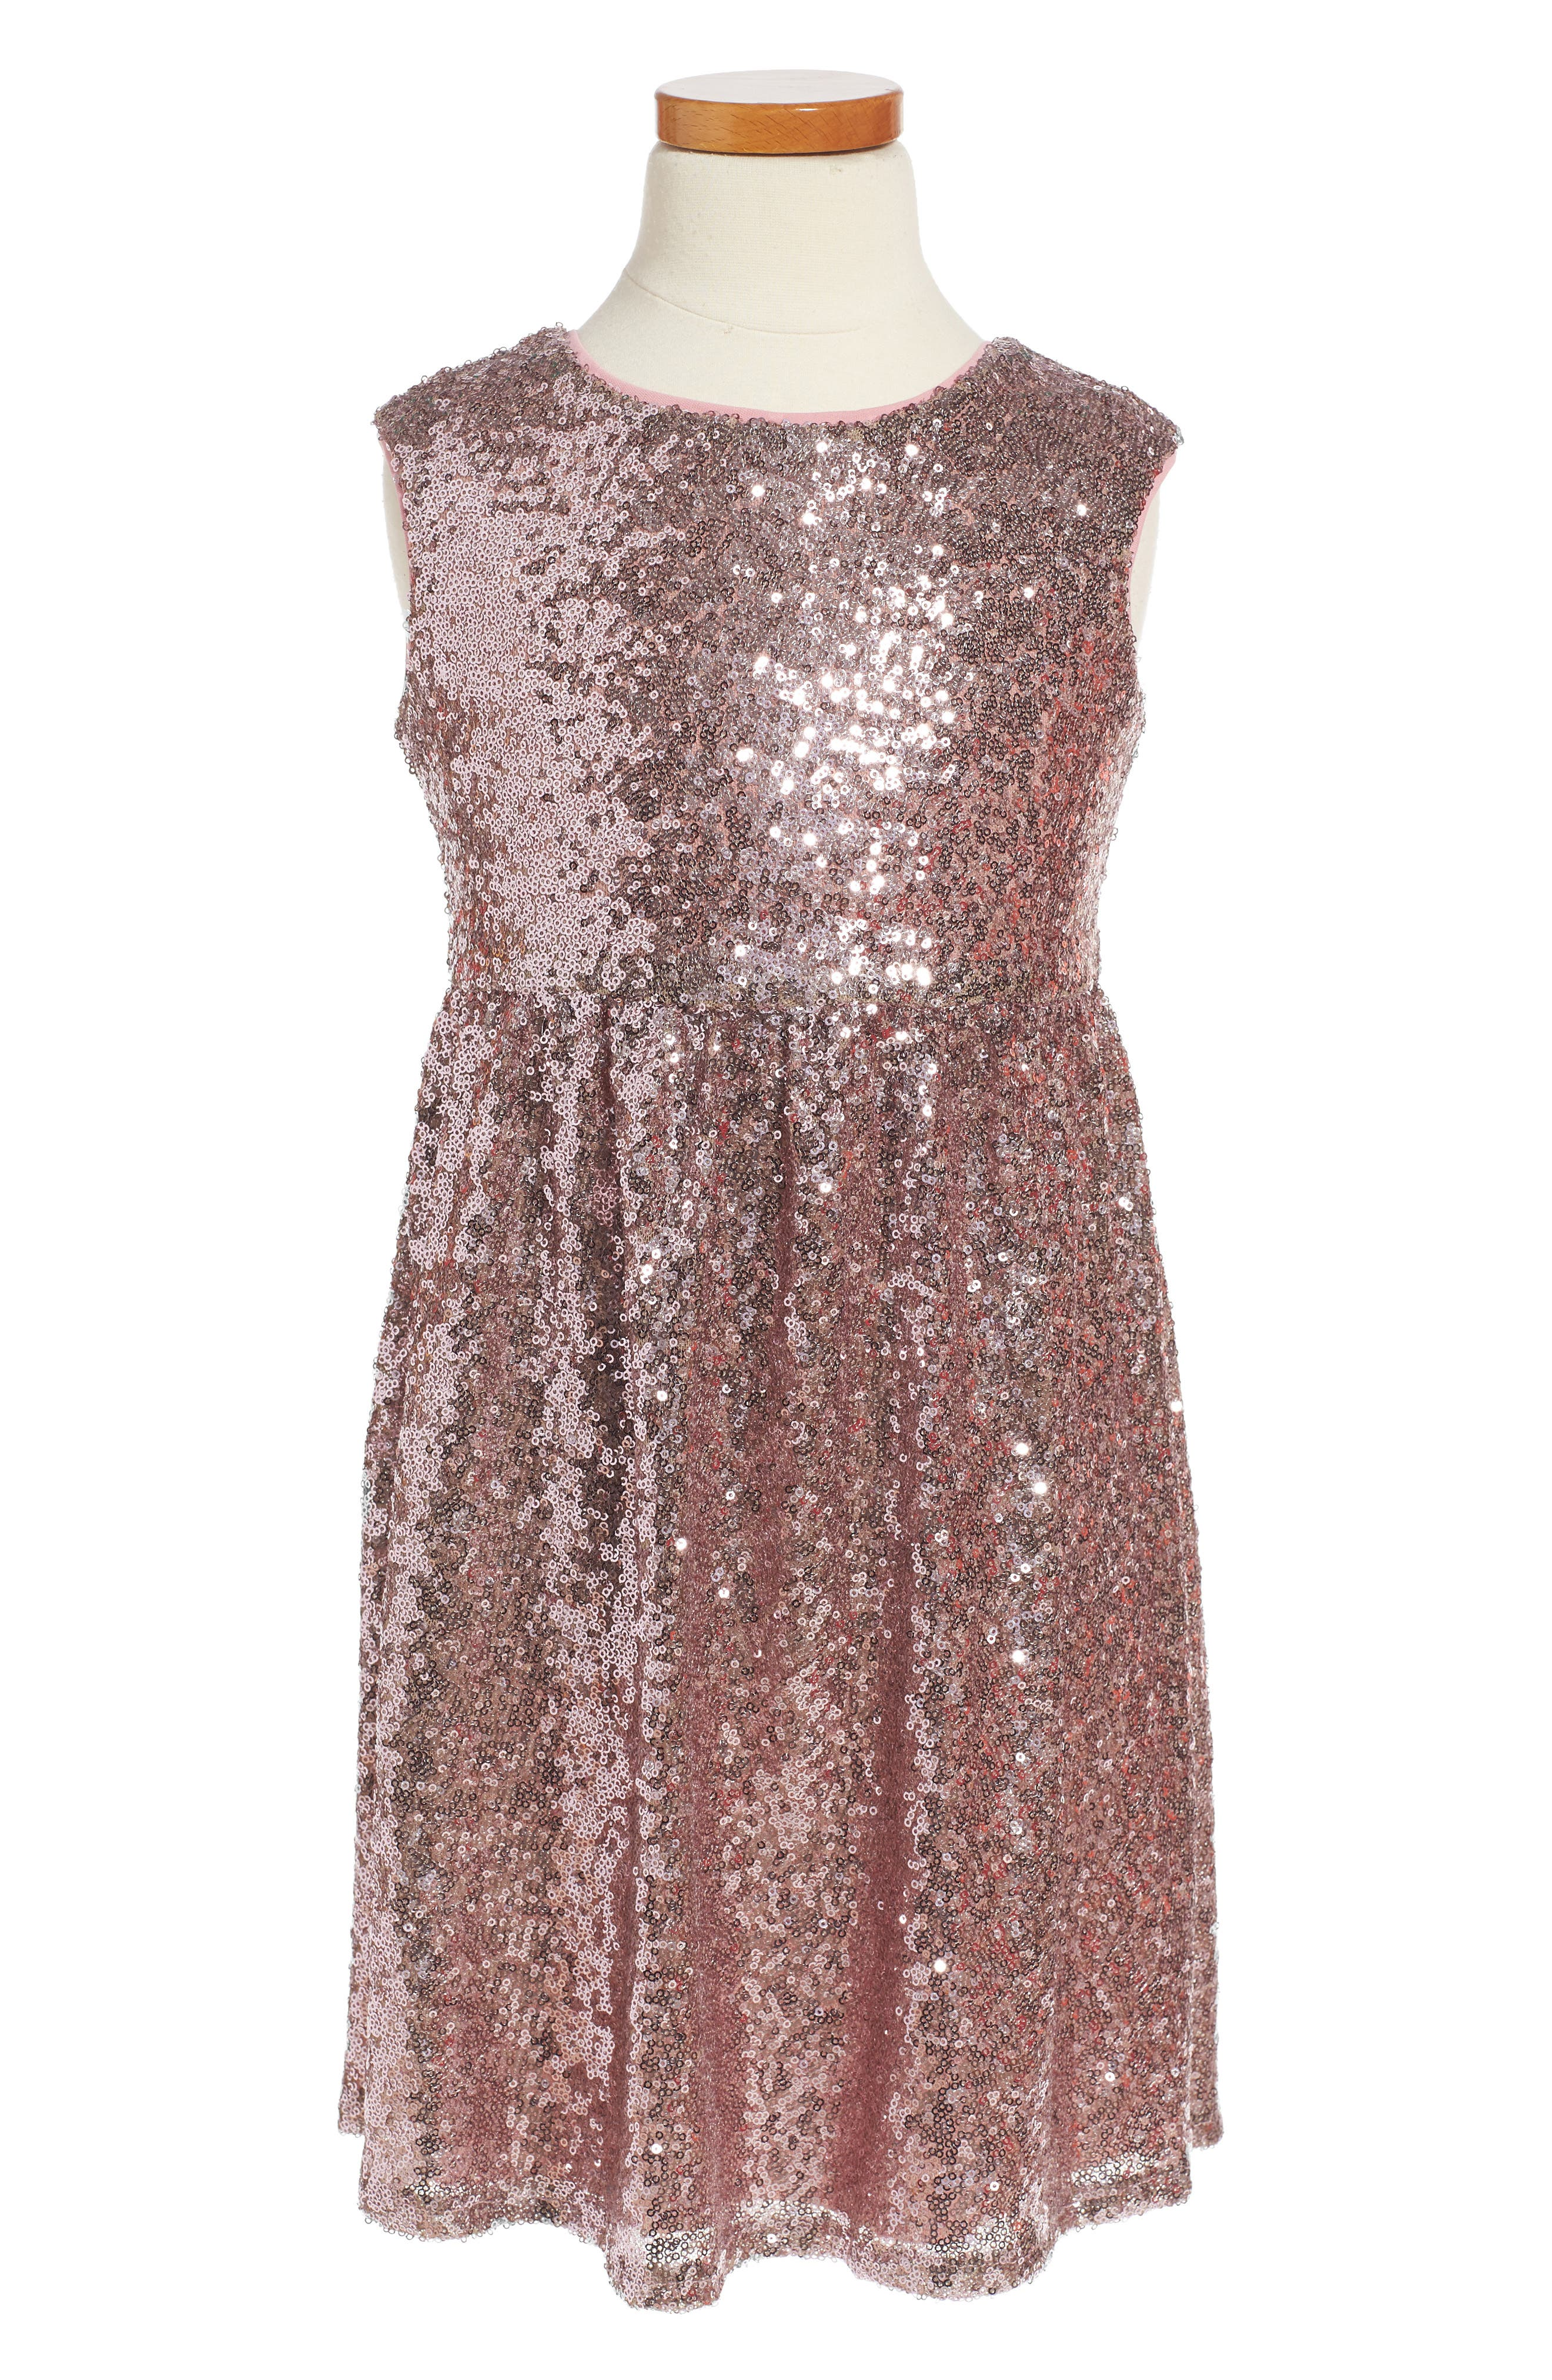 Alternate Image 1 Selected - Love, Nickie Lew Sequin Dress (Toddler Girls & Little Girls)